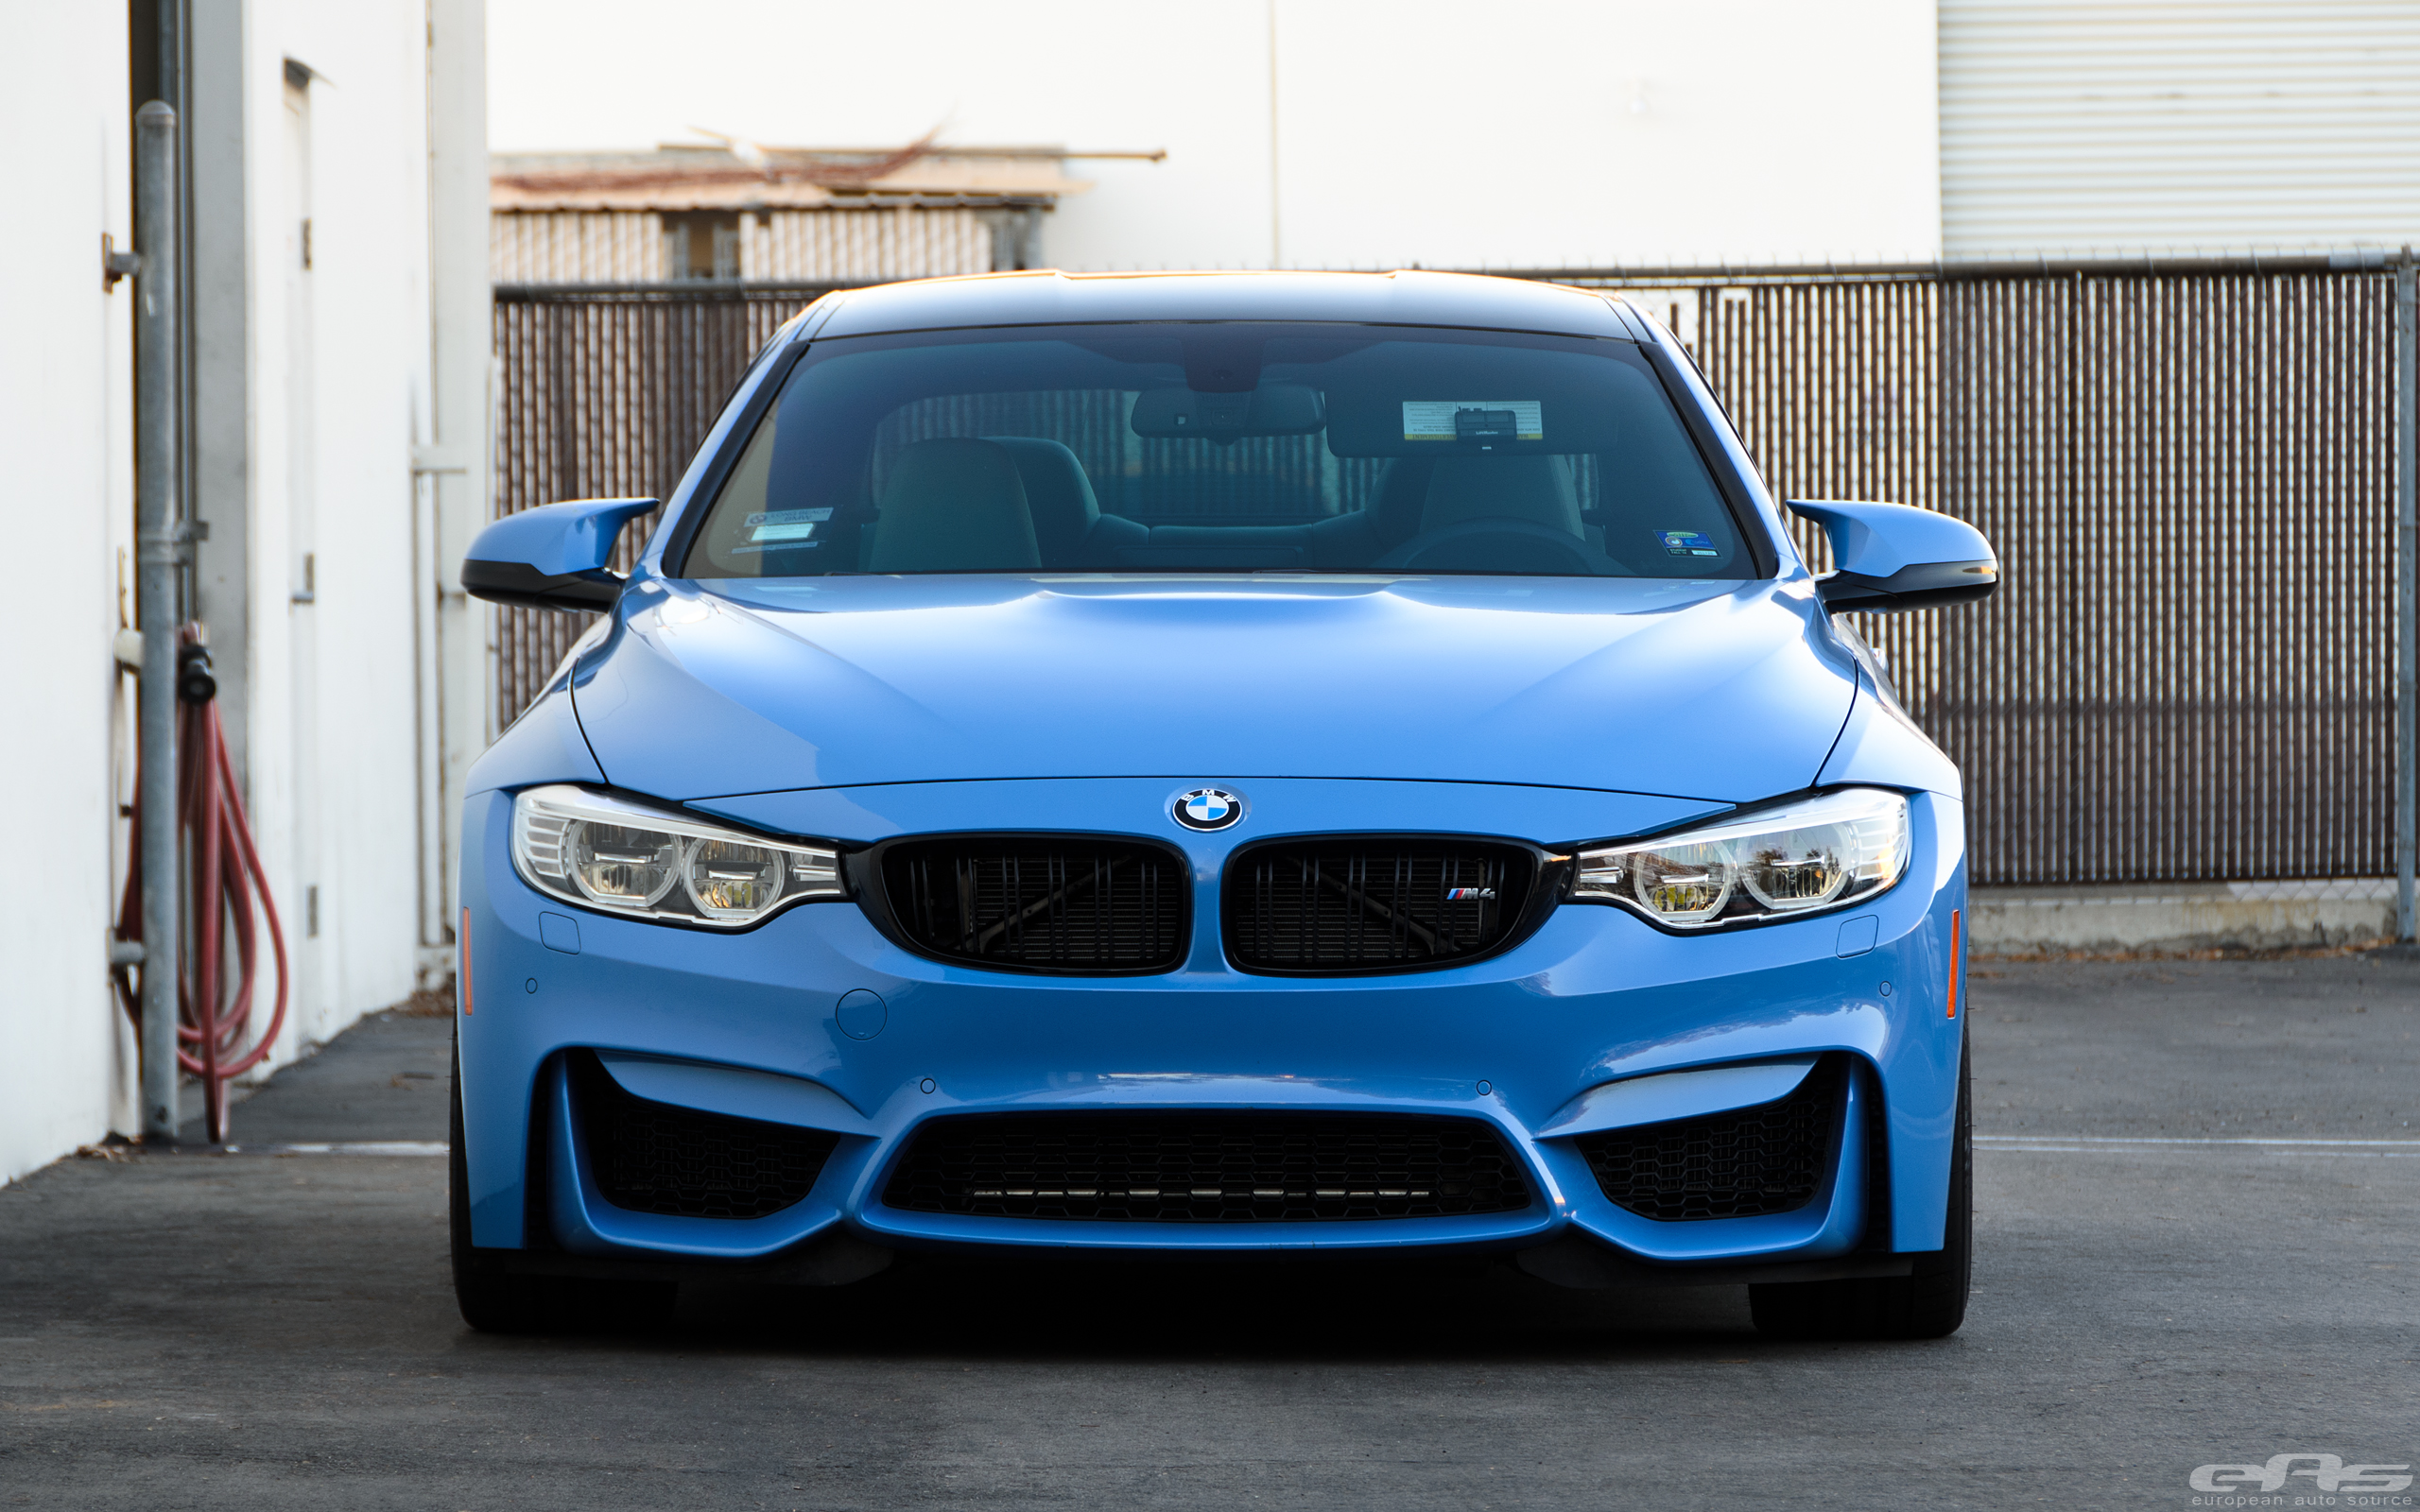 Akrapovic Exhaust And KW HAS Installed On Yas Marina Blue M4 Image 1